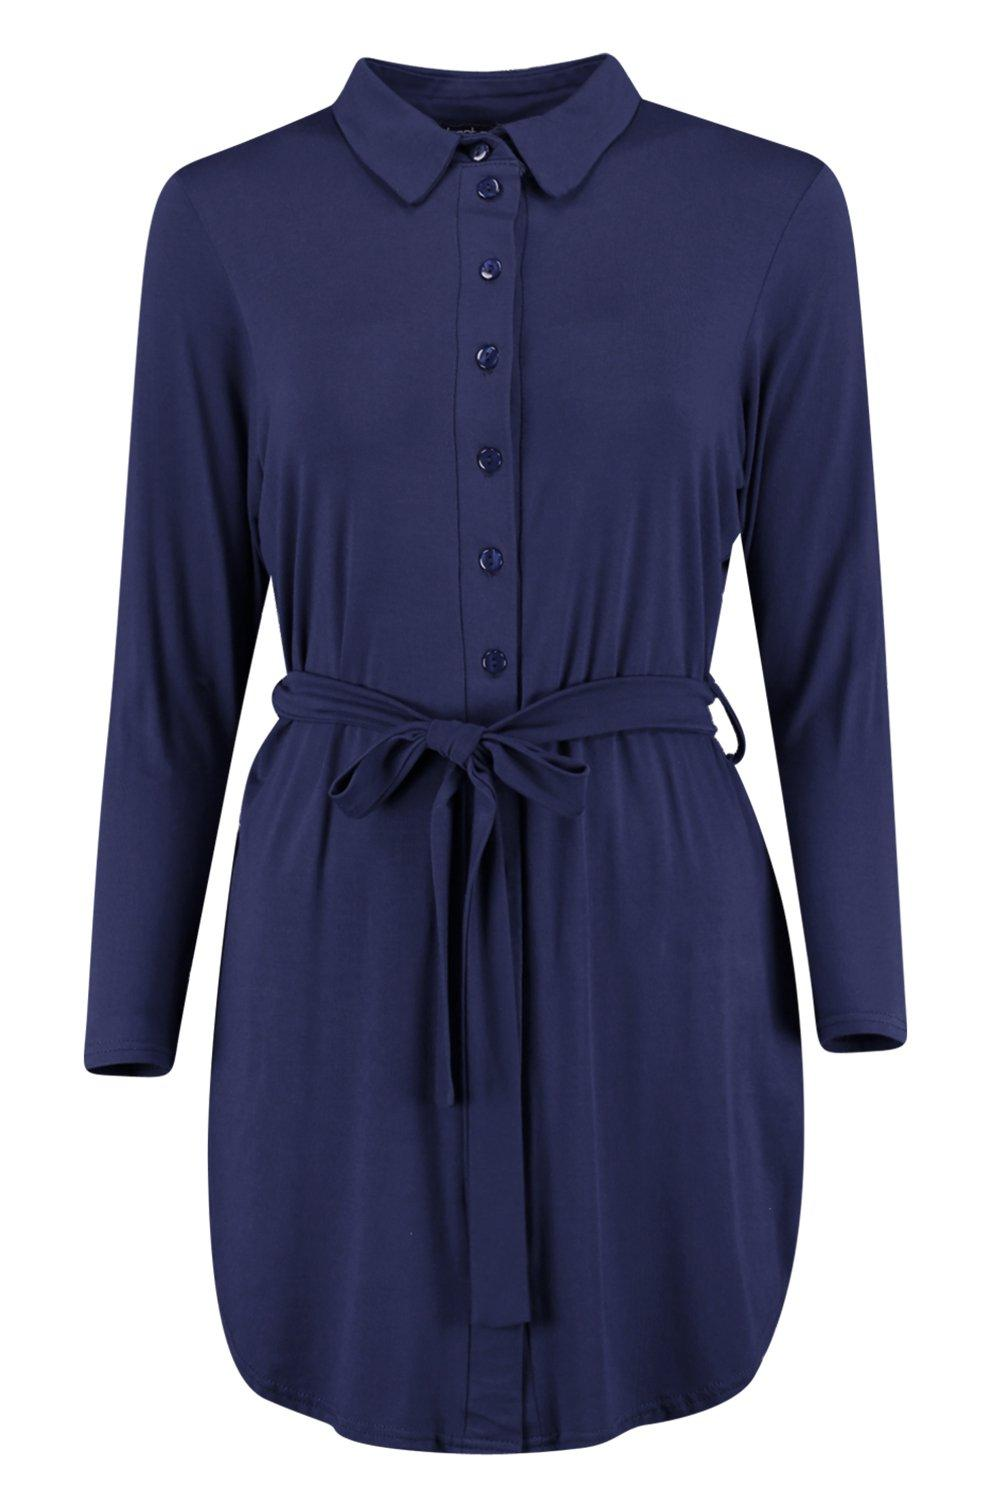 Boohoo Womens Catalina Button Through Collar Shirt Dress